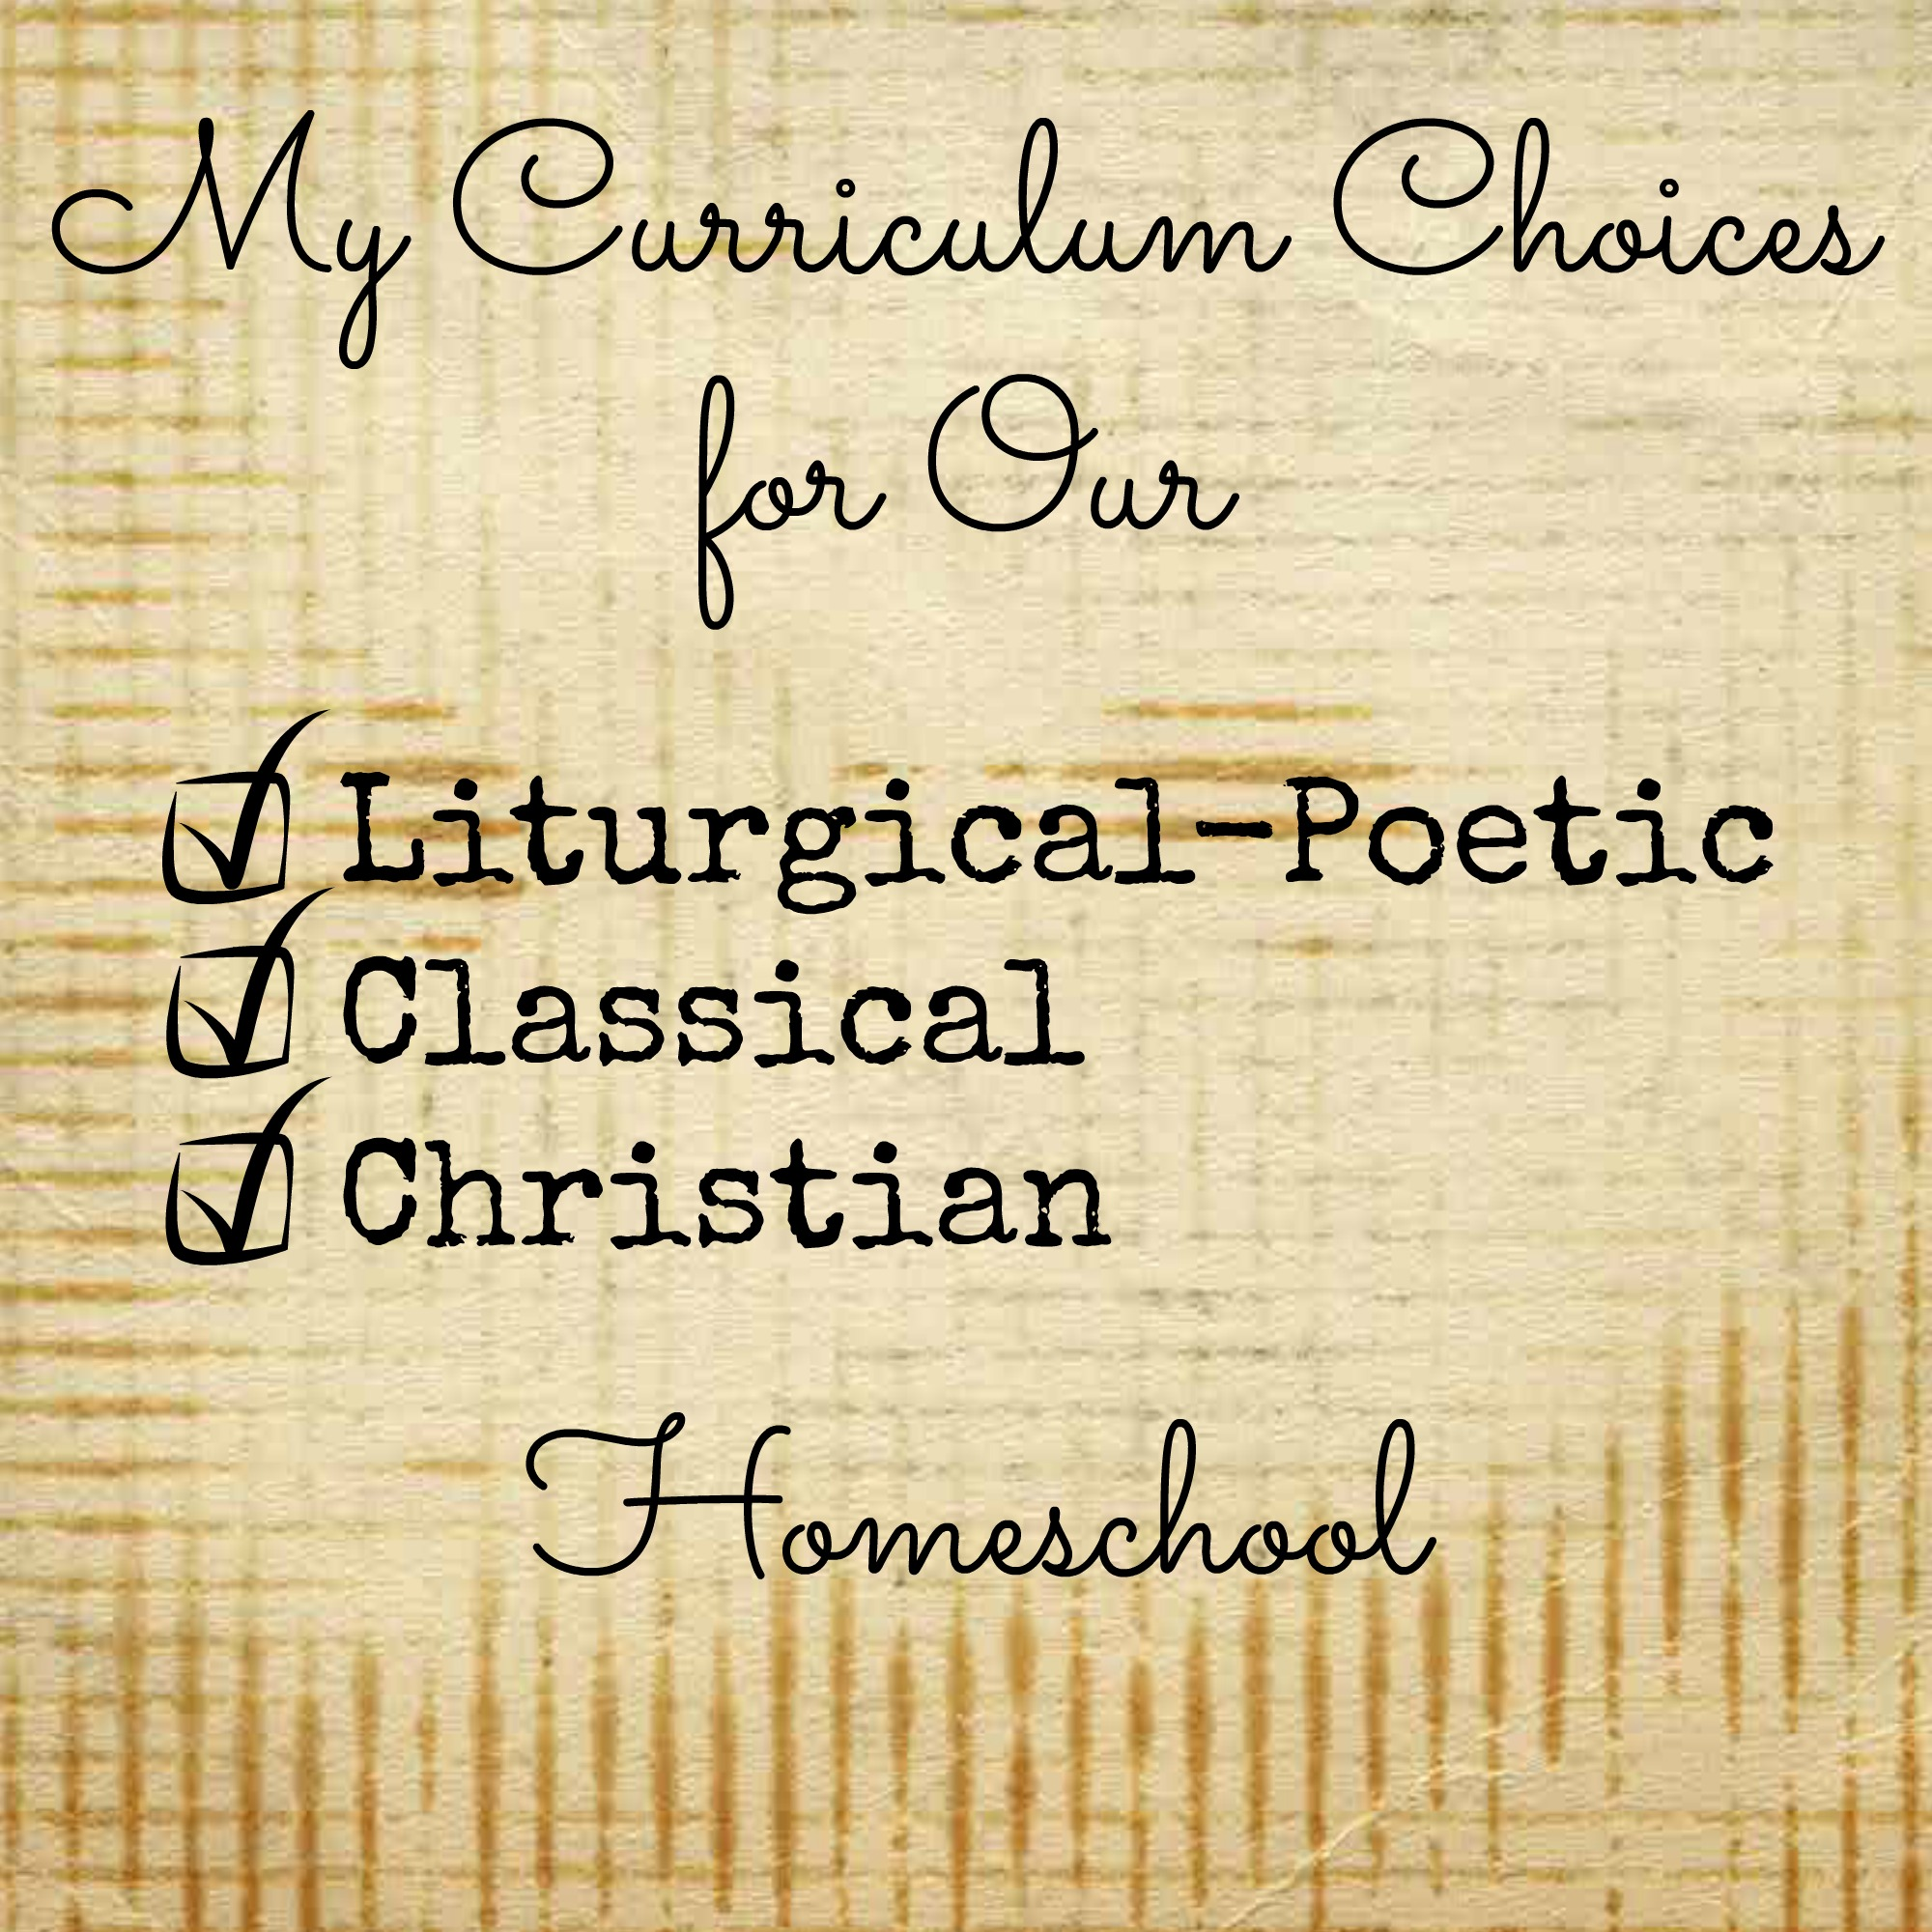 Homeschool Curriculum Choices for 5th and 7th Grades